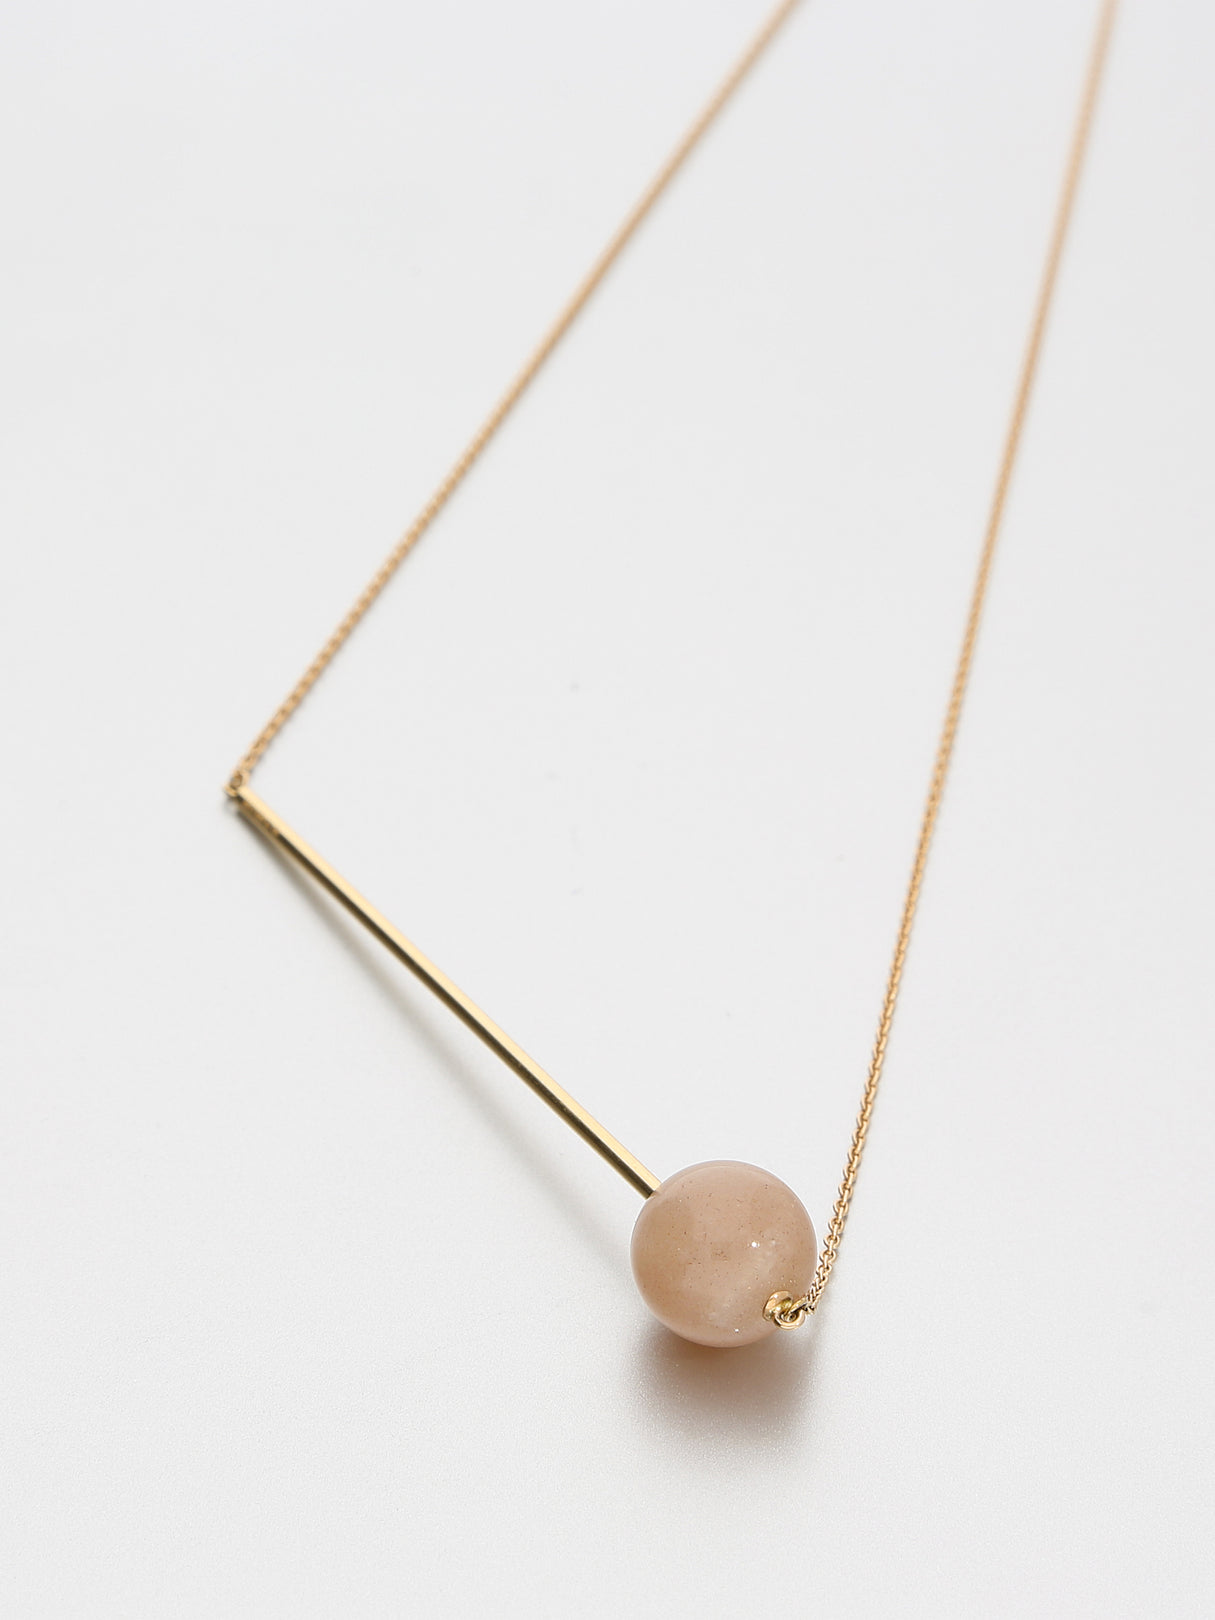 Abacus Moonstone Necklace, Rose gold with dusty pink moonstone 12 mm